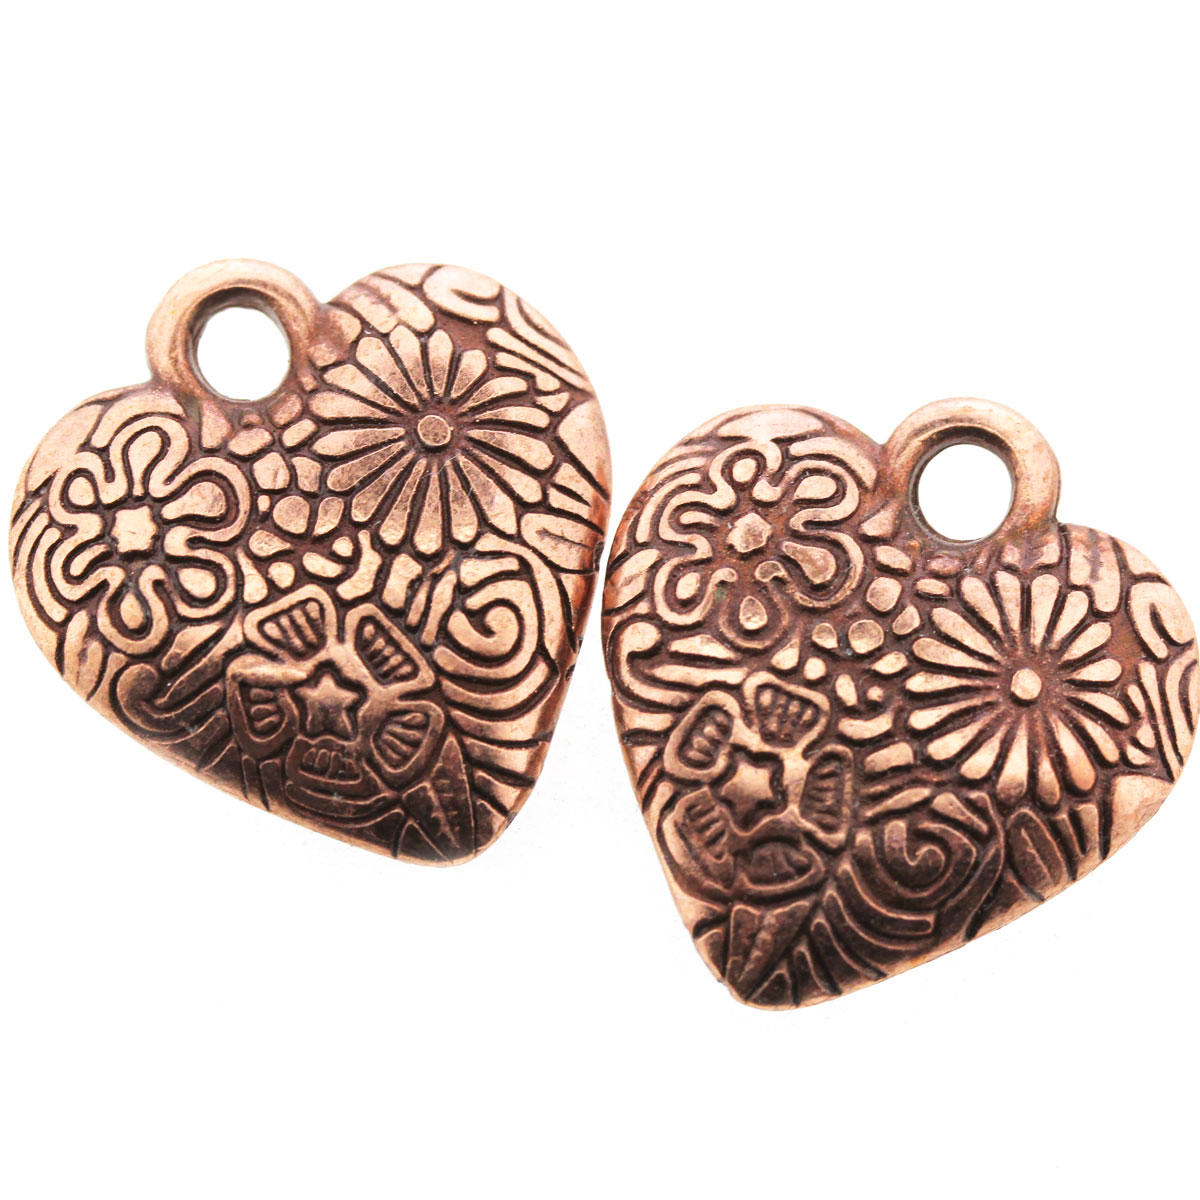 Antique Copper Flowered Heart Charm